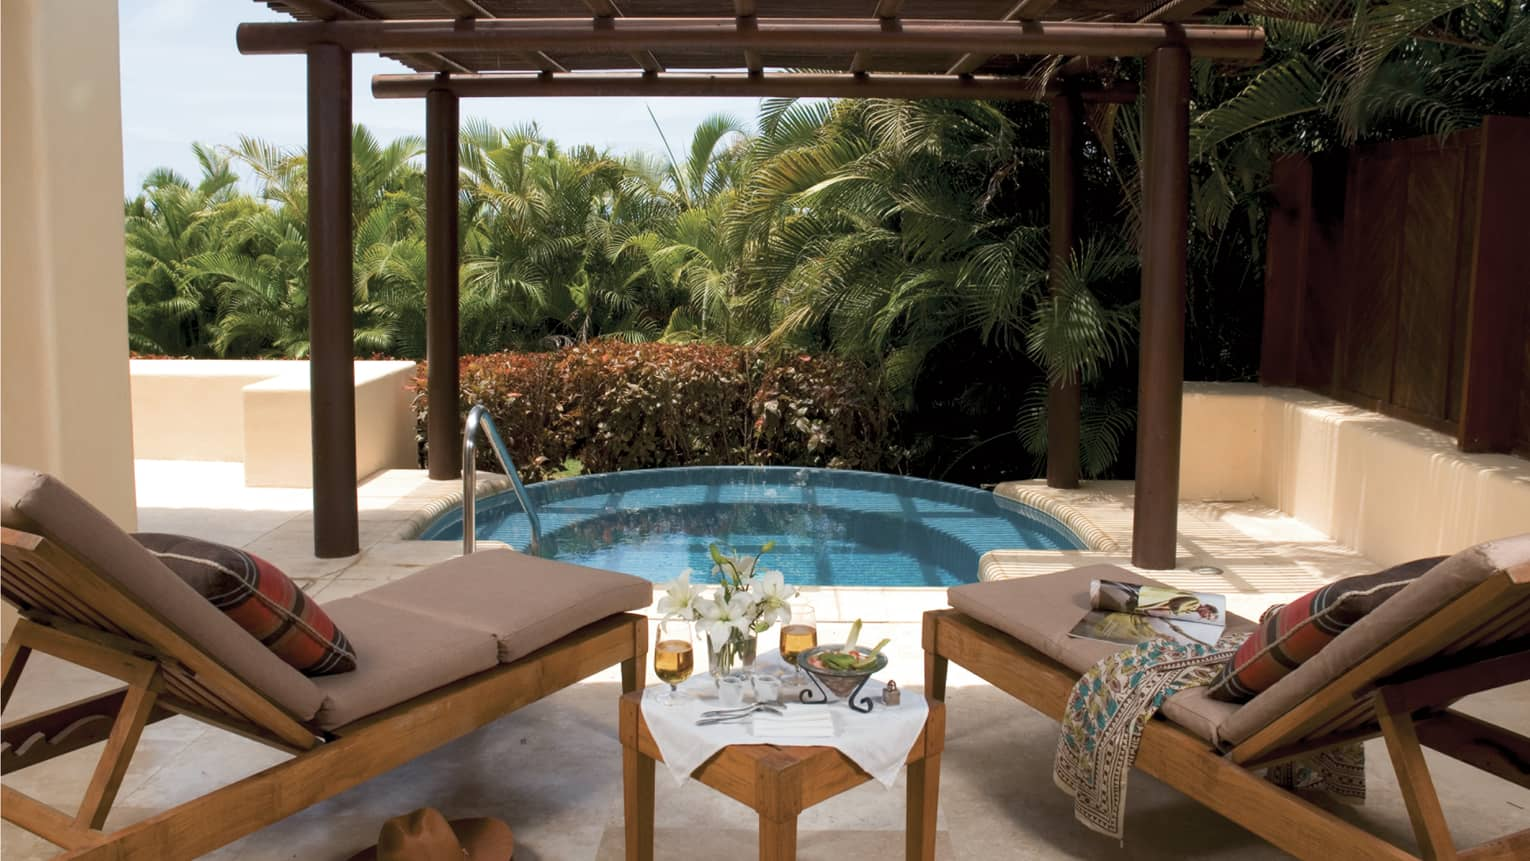 Plunge pool beside lounge chairs and table with fresh flowers, glasses of beer and dip